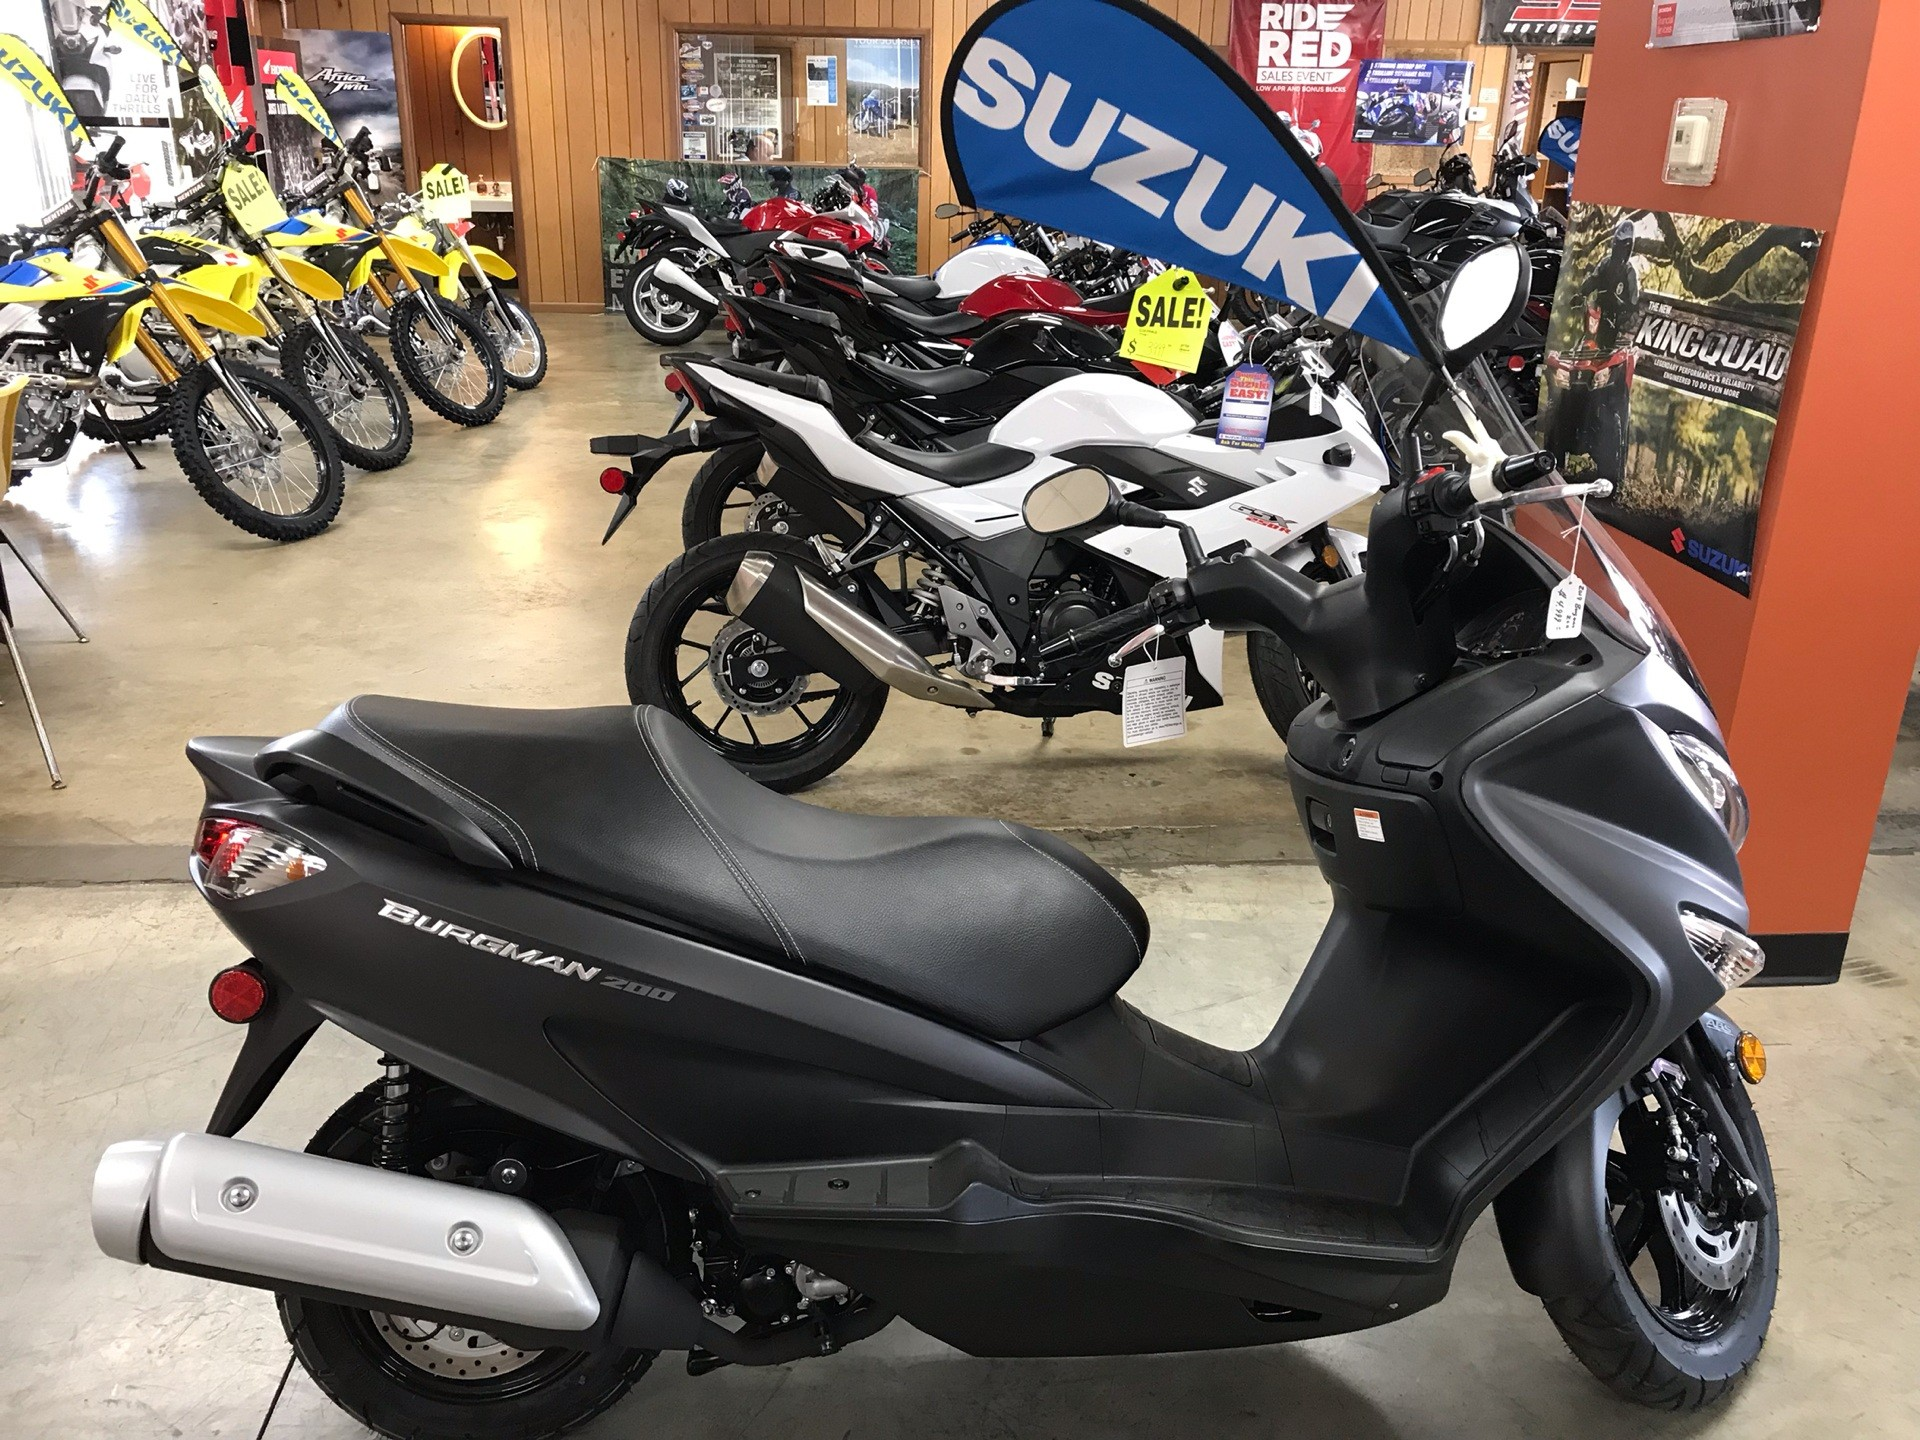 2019 Suzuki Burgman 200 in Sanford, North Carolina - Photo 6